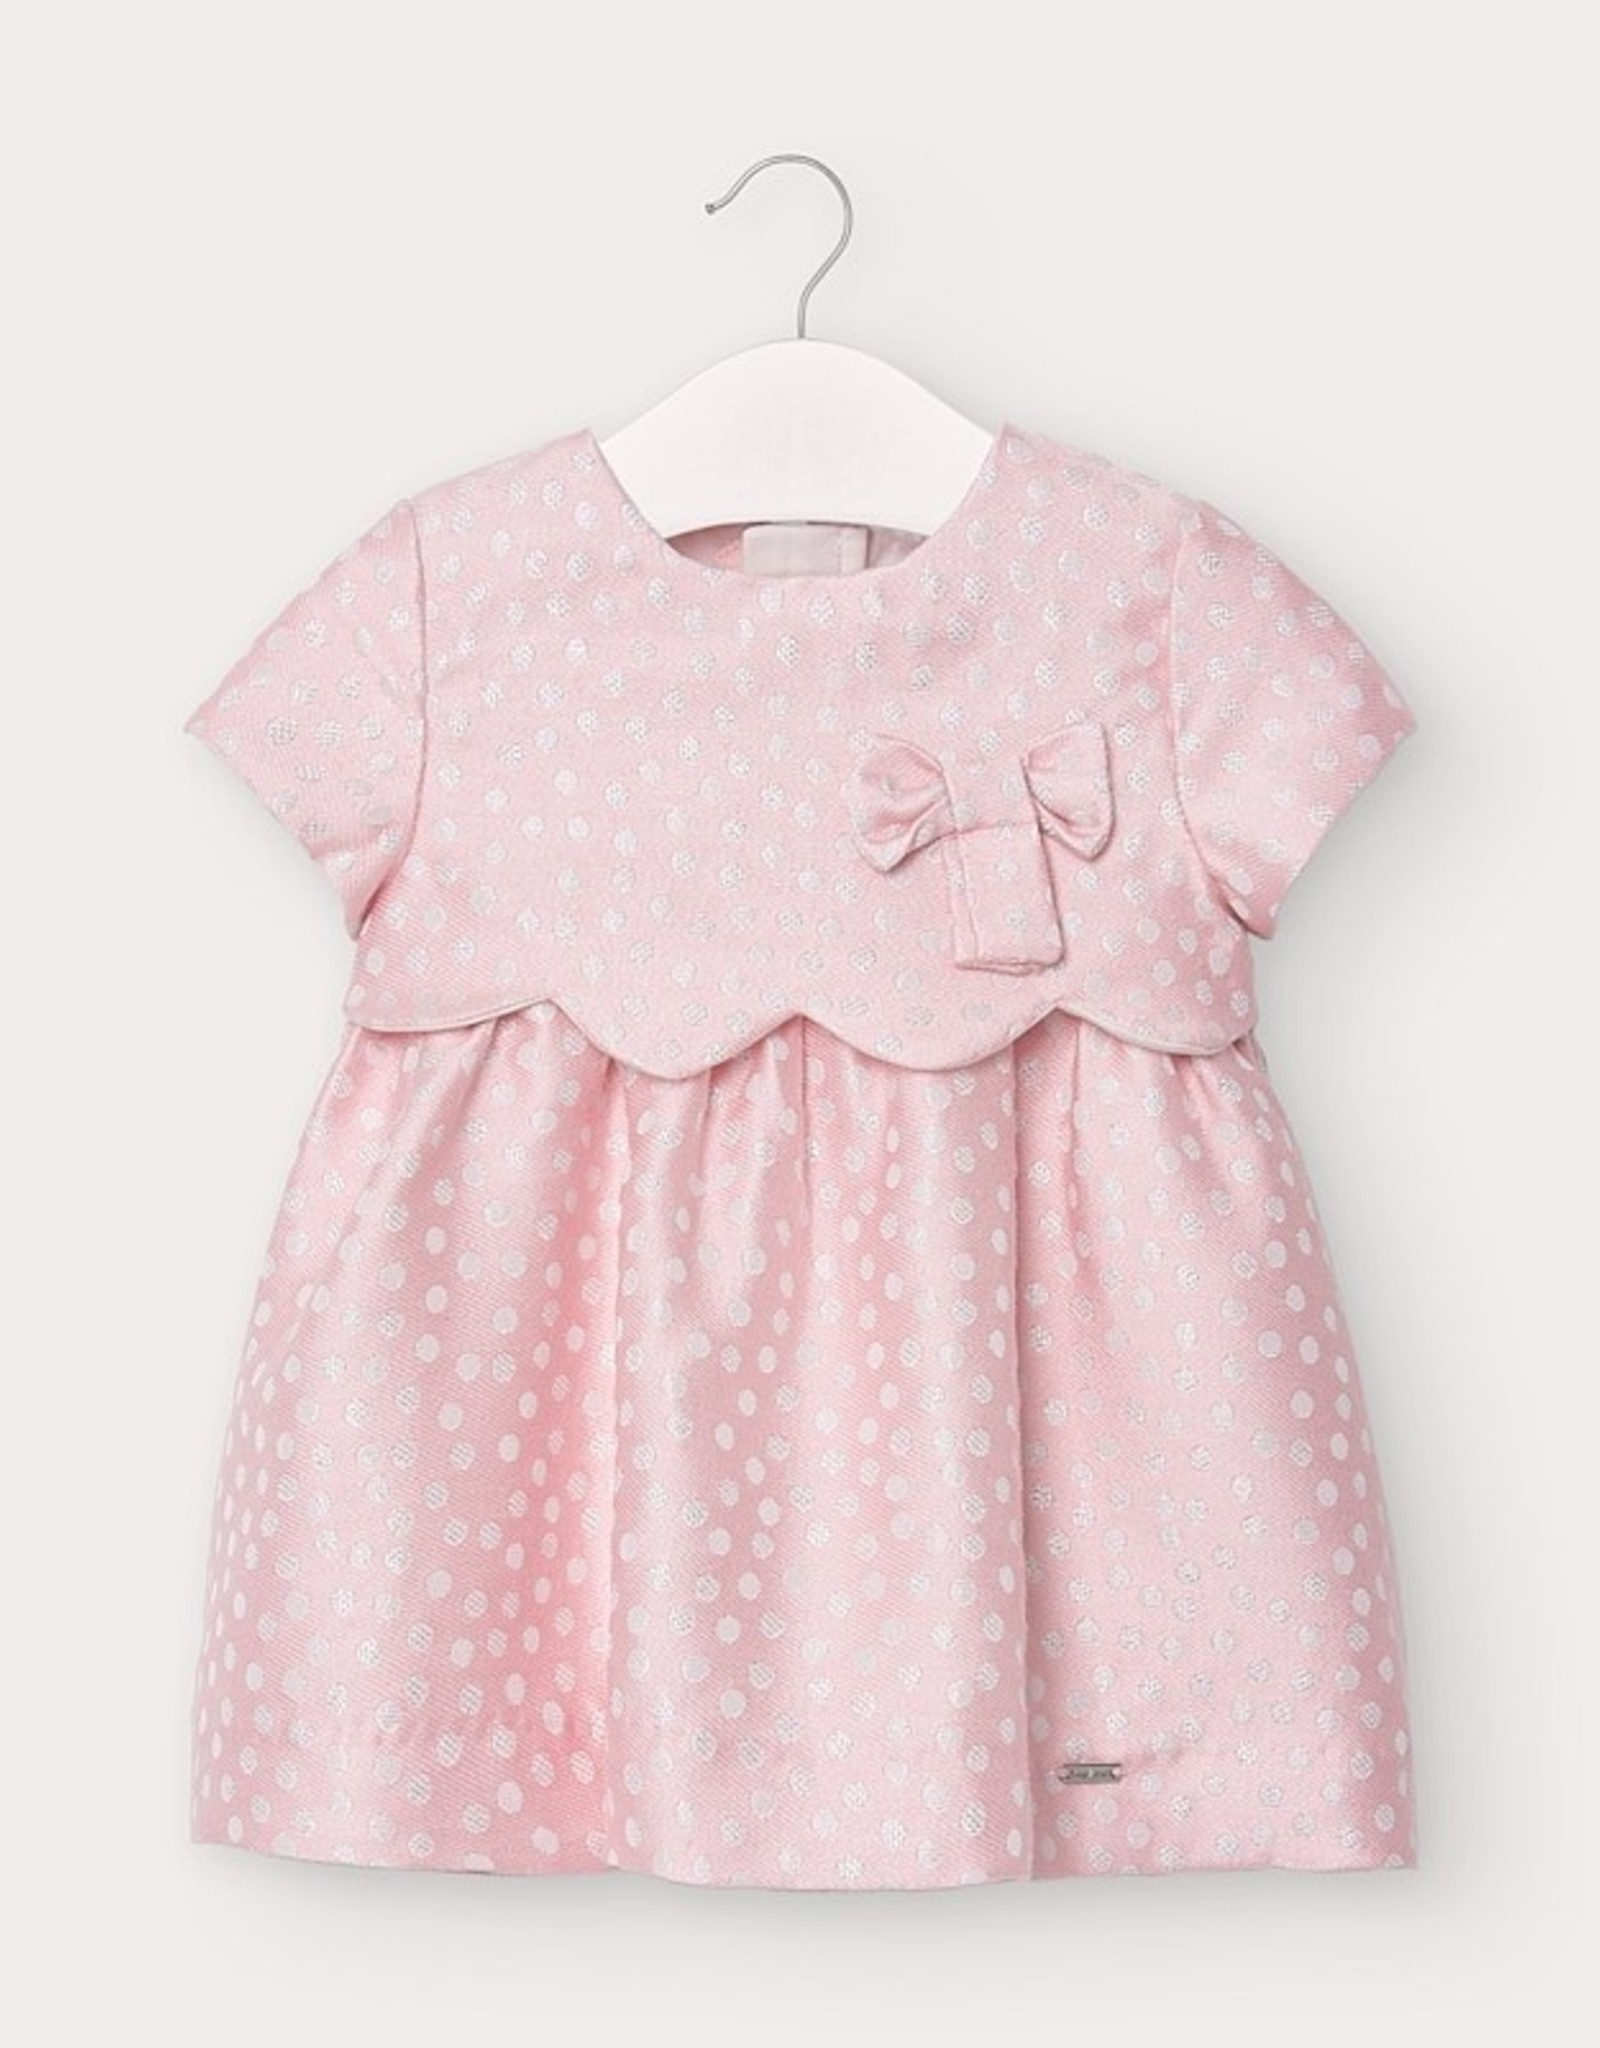 Mayoral FA20 Pink Polka Dot Dress